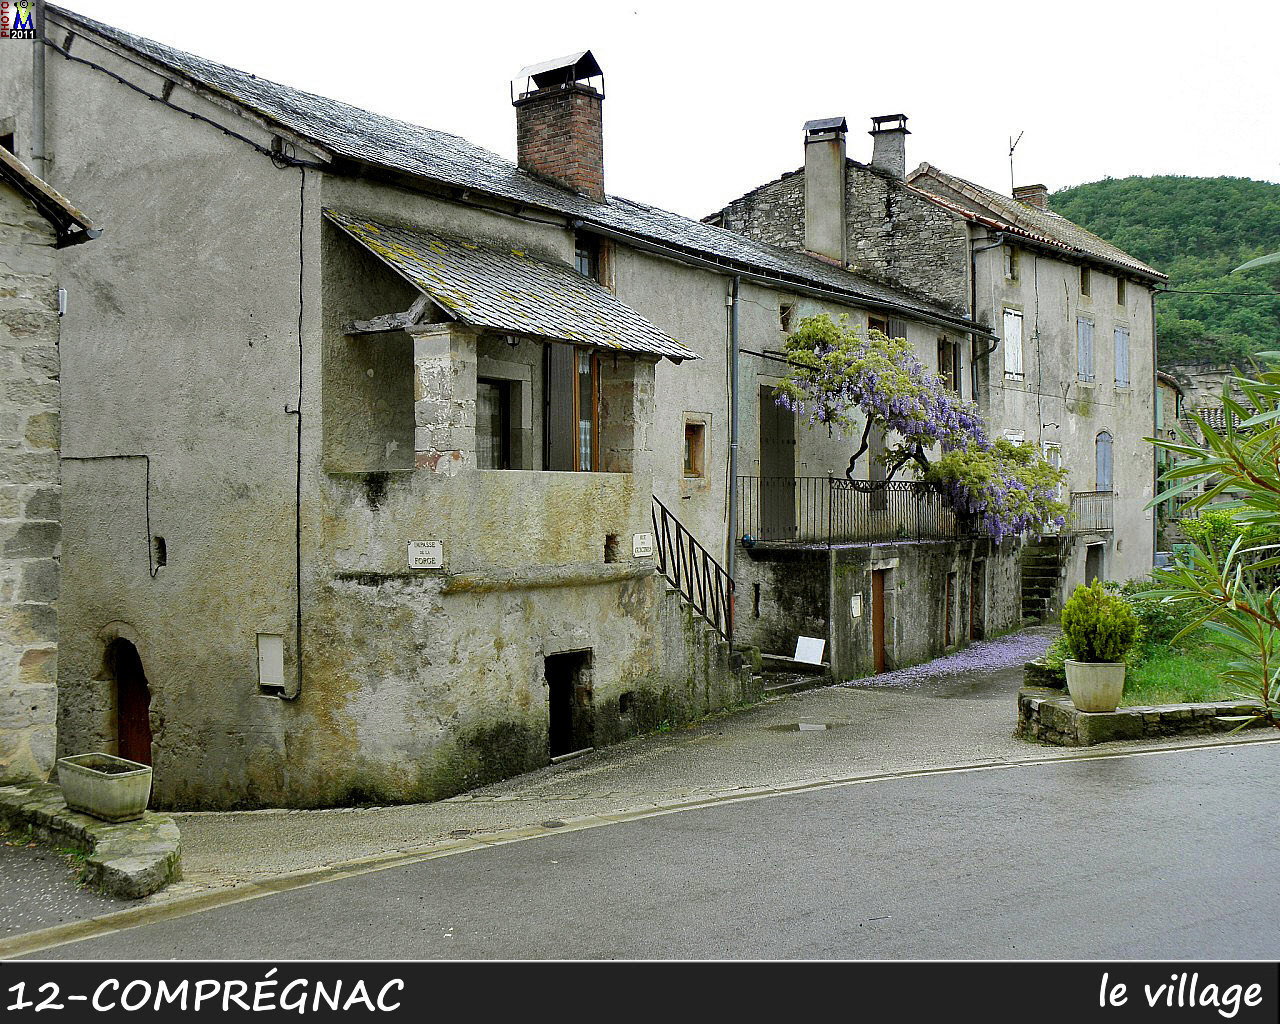 12COMPREGNAC_village_102.jpg